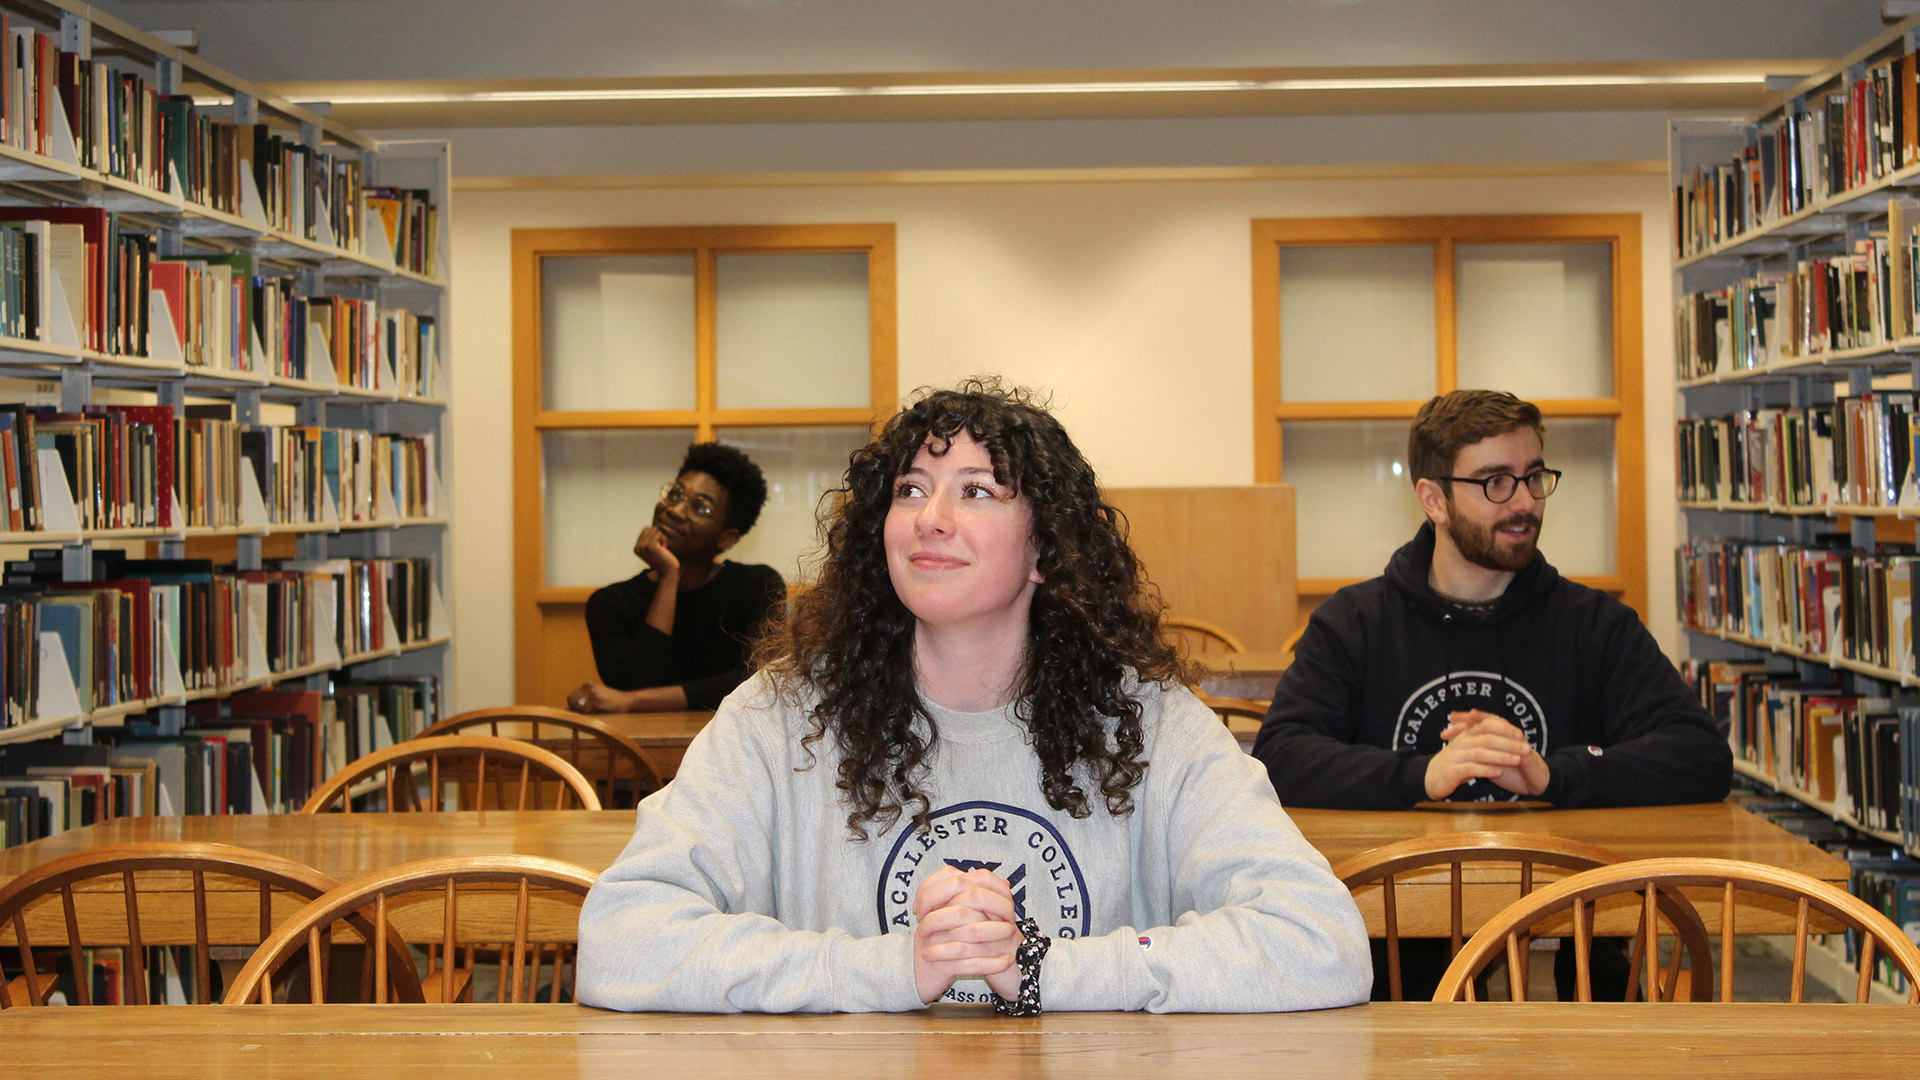 Students physically distancing themselves from each other in the DeWitt Wallace Library.